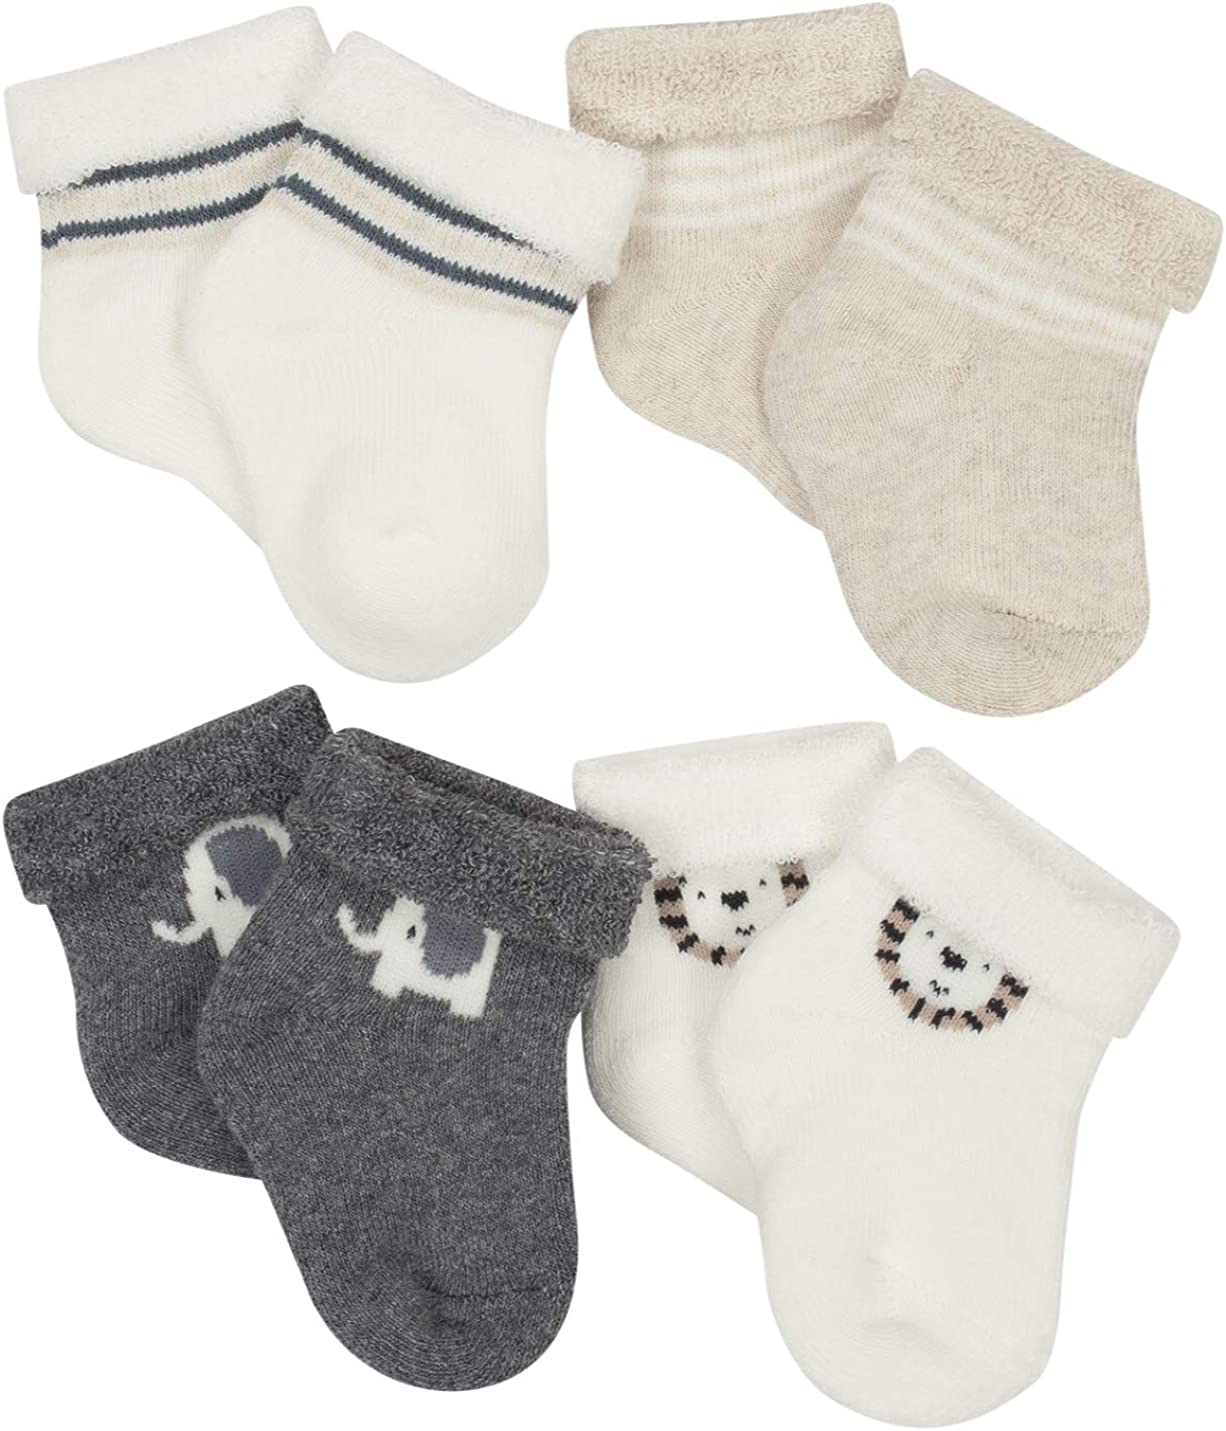 4-Pack Organic Cotton Ankle Bootie Sock Gerber Baby Girl 0-6 Months Wiggle Proof Stay On